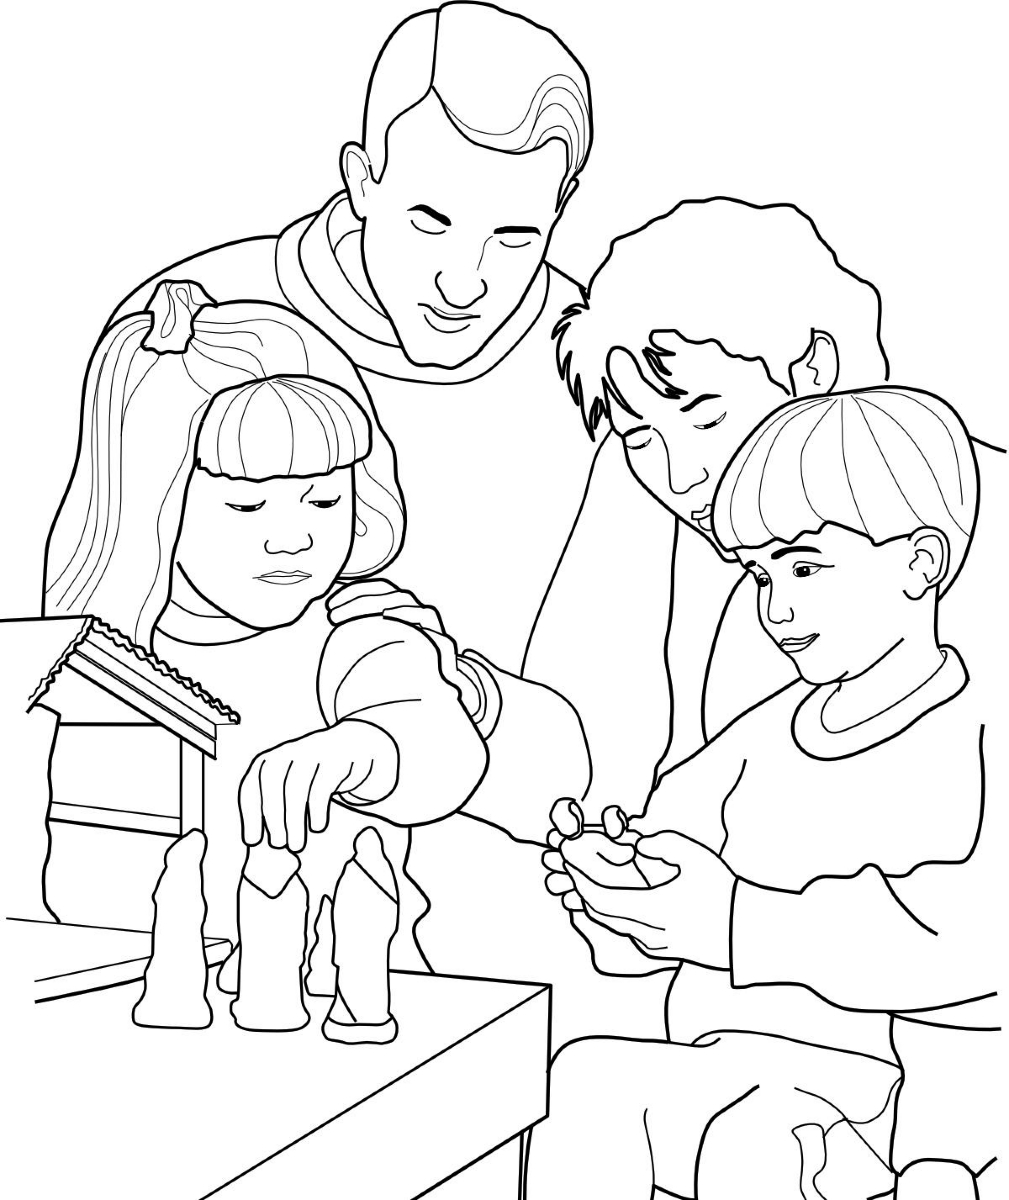 This is an image of Ridiculous Lds Nativity Coloring Pages